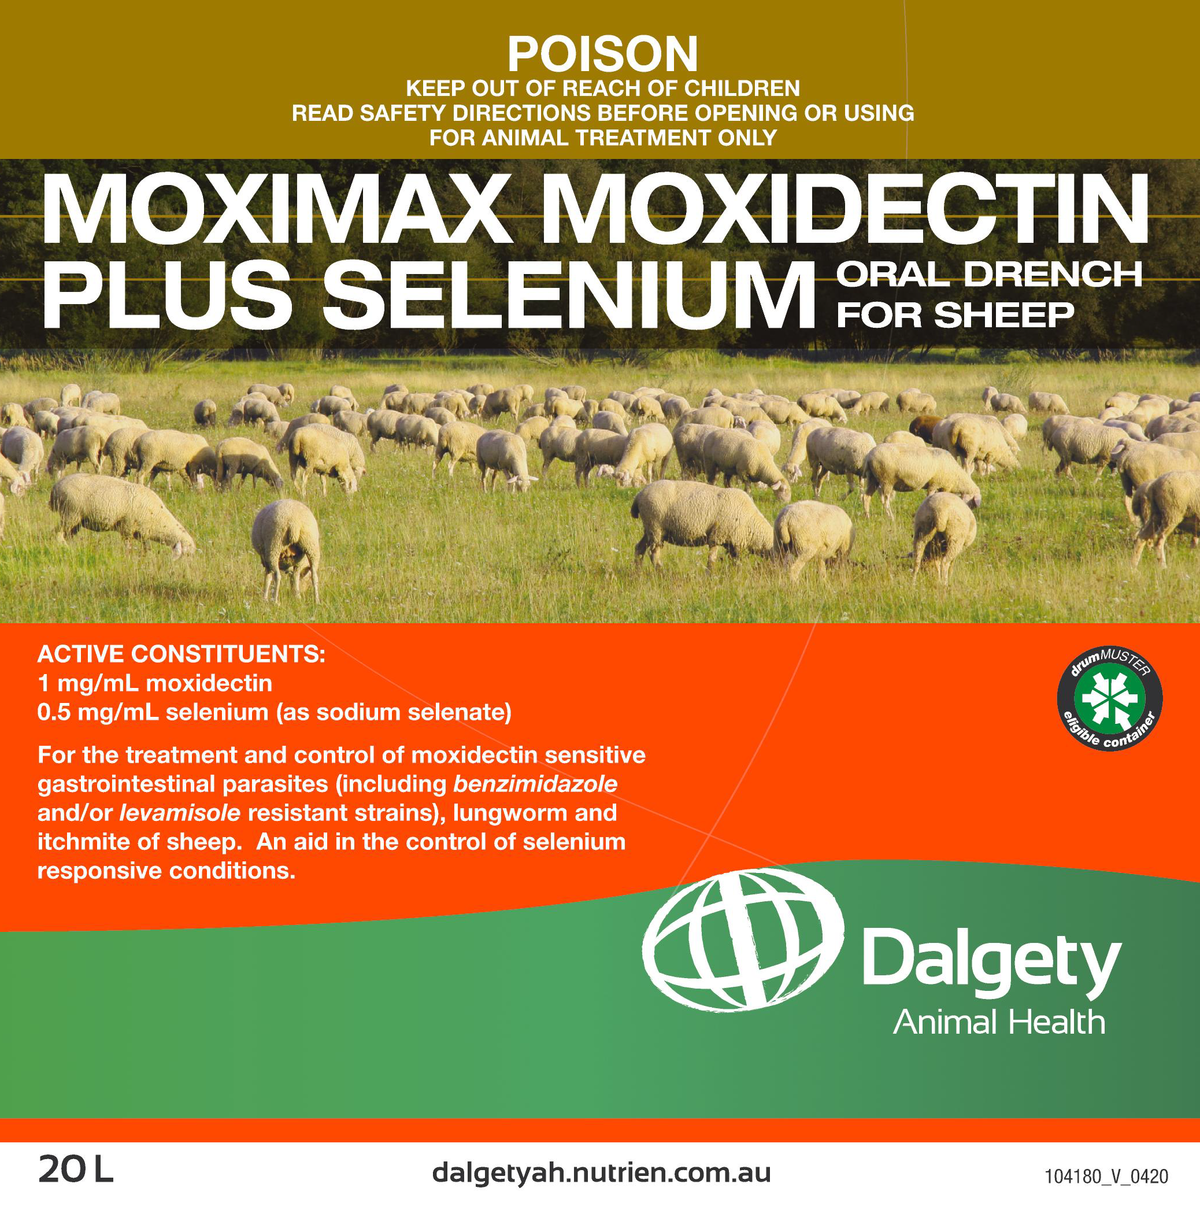 Moximax Moxidectin Plus Selenium Oral Drench For Sheep Dalgety Animal Health